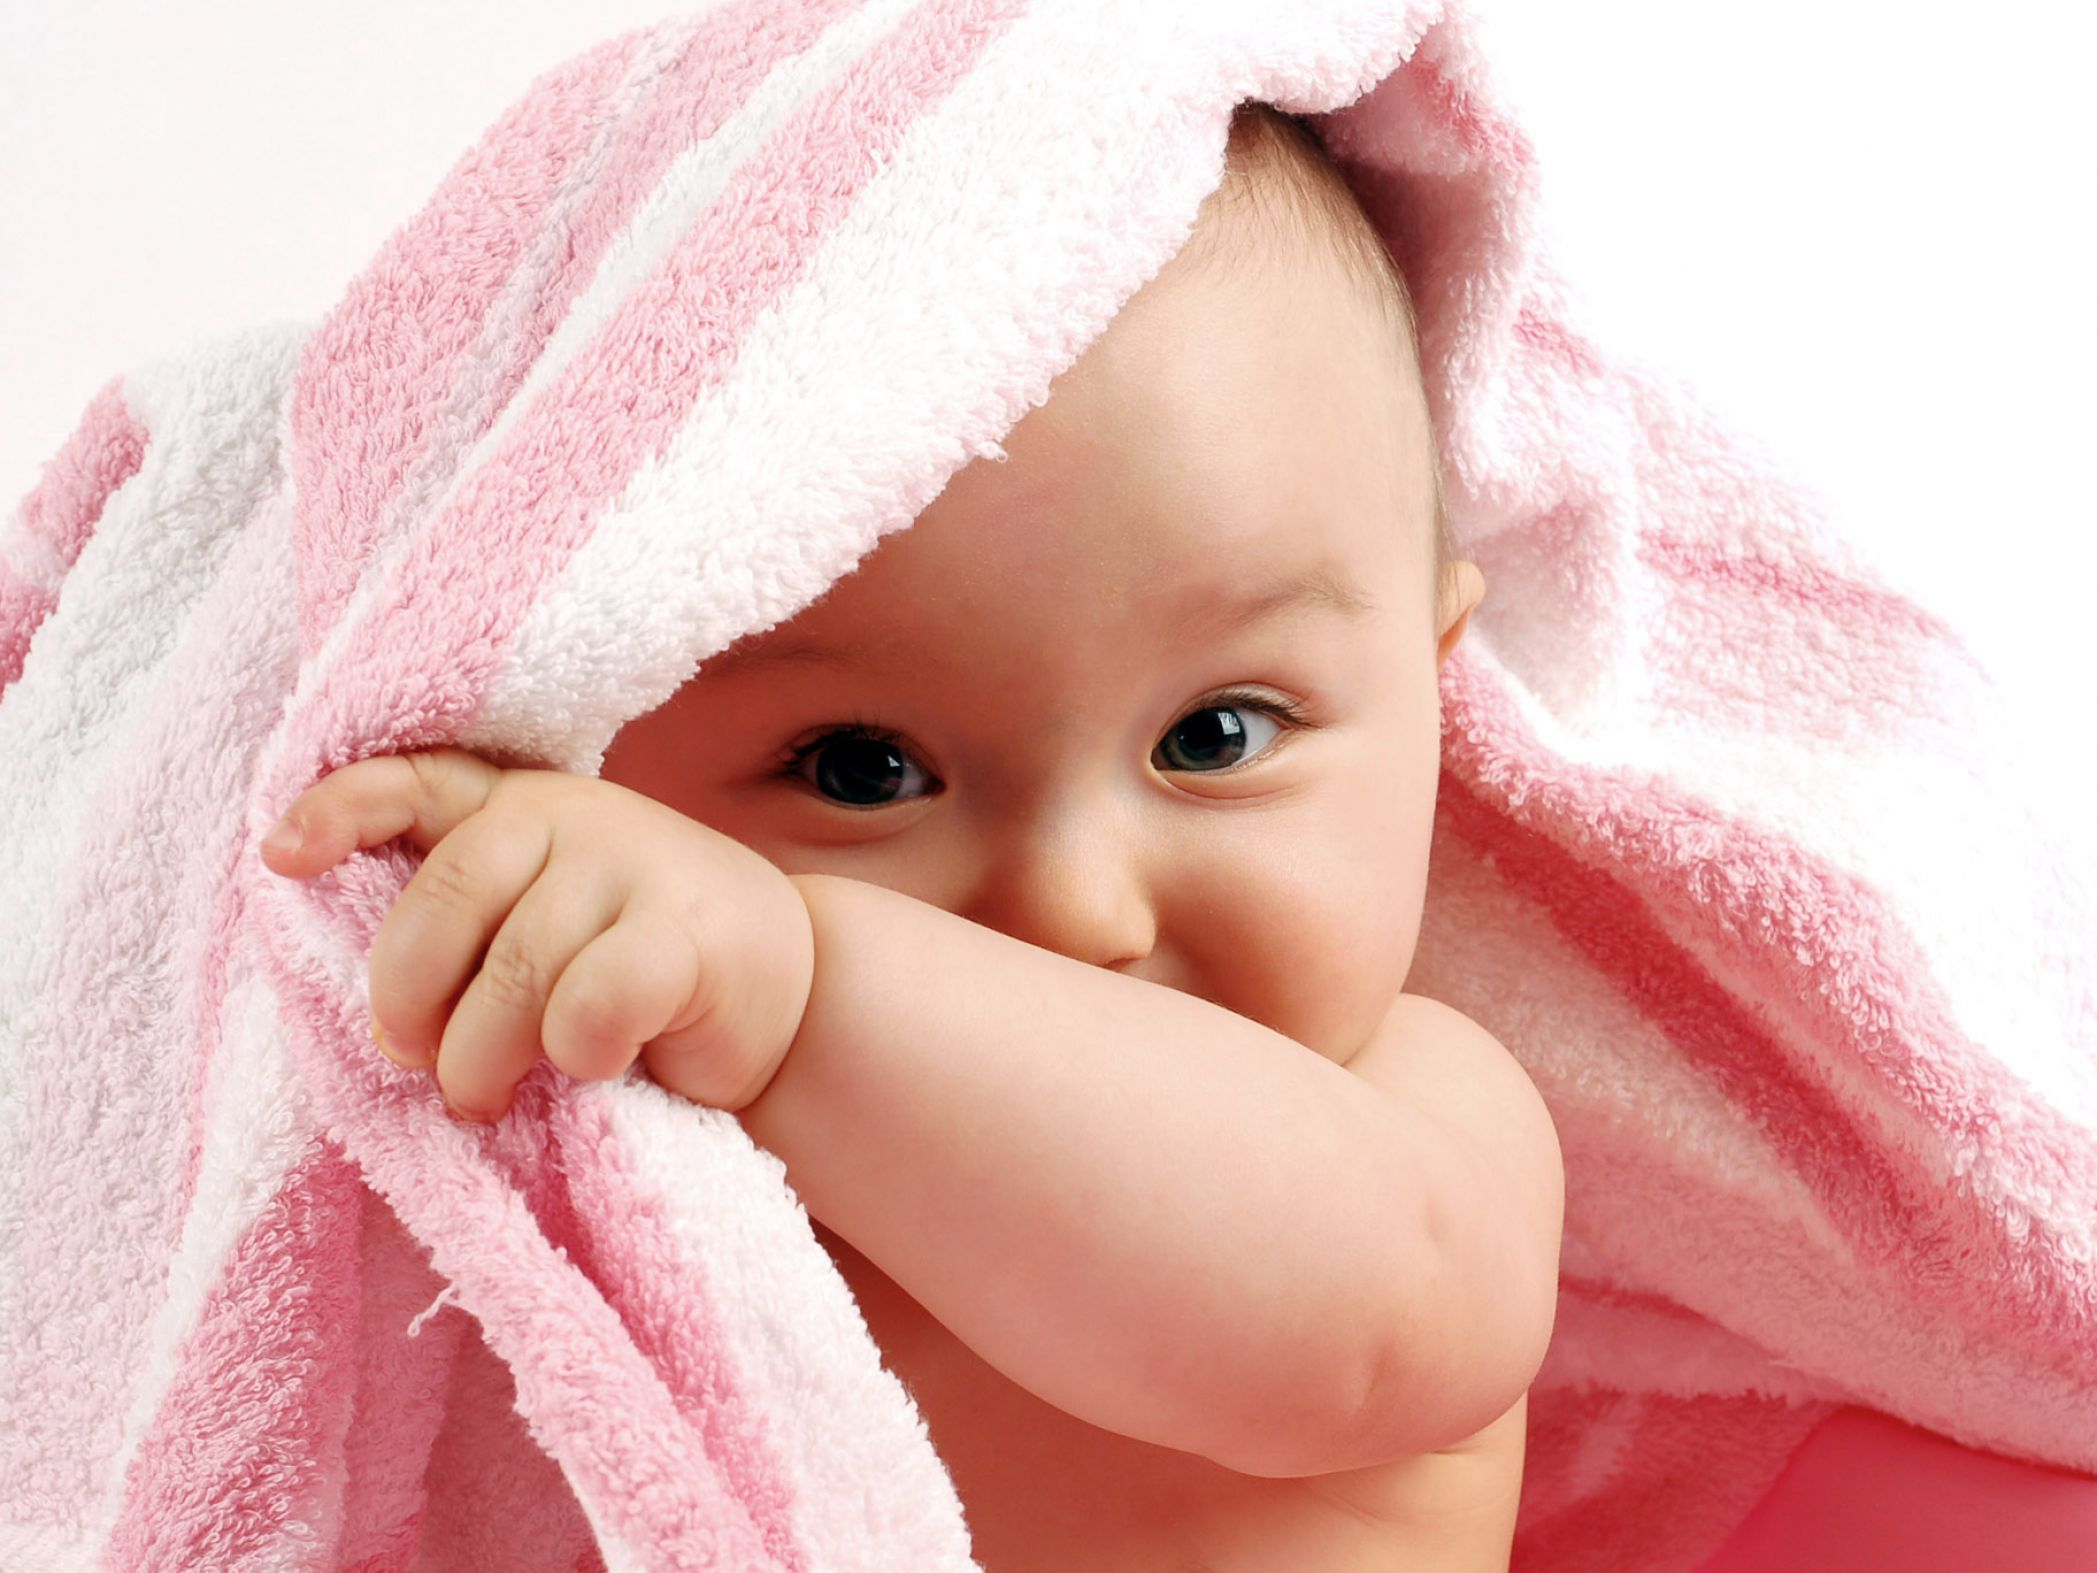 Very cute baby wallpapers pictures 3 2097x1573